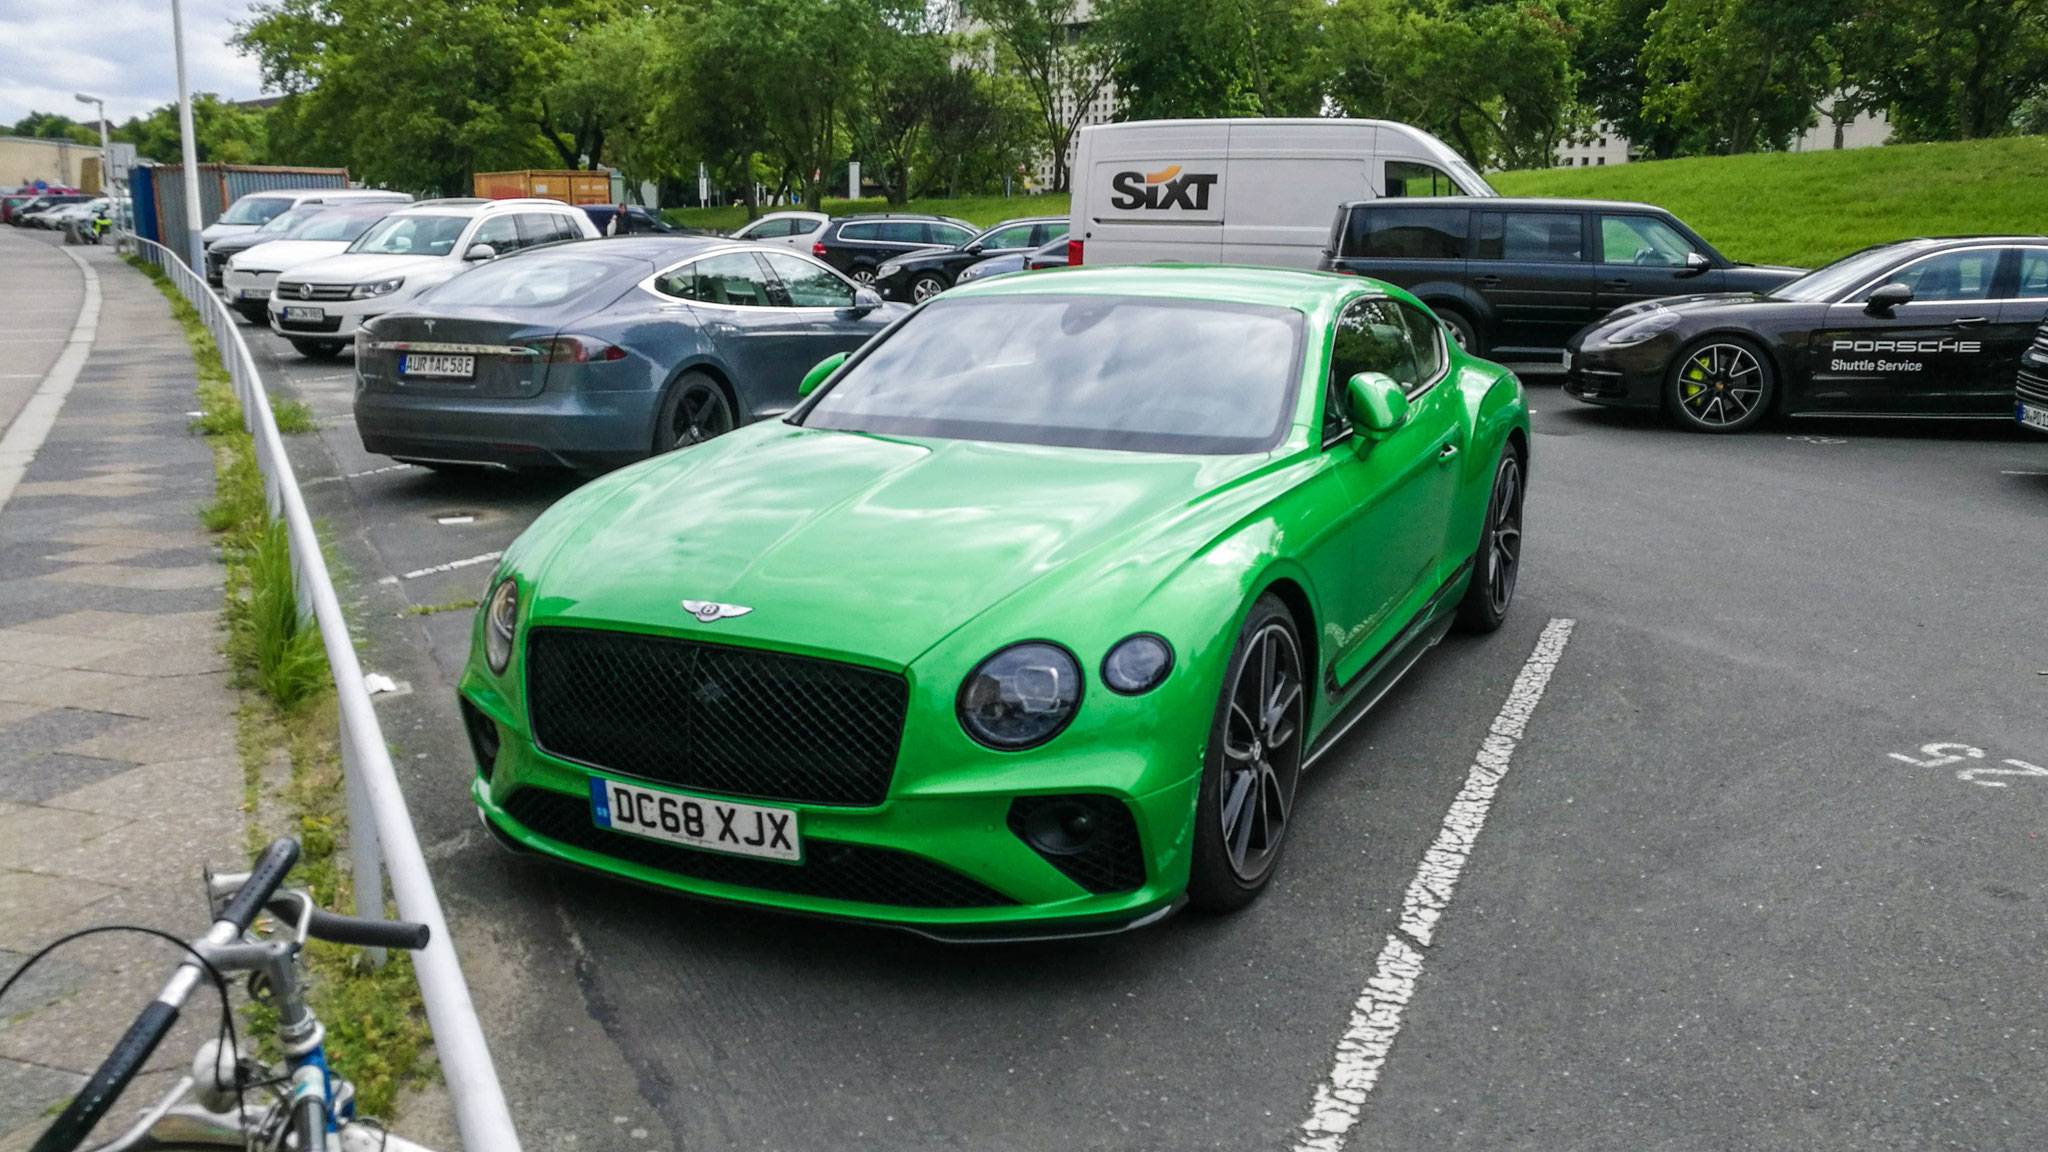 Bentley Continental GT - DC68-XJX (GB)